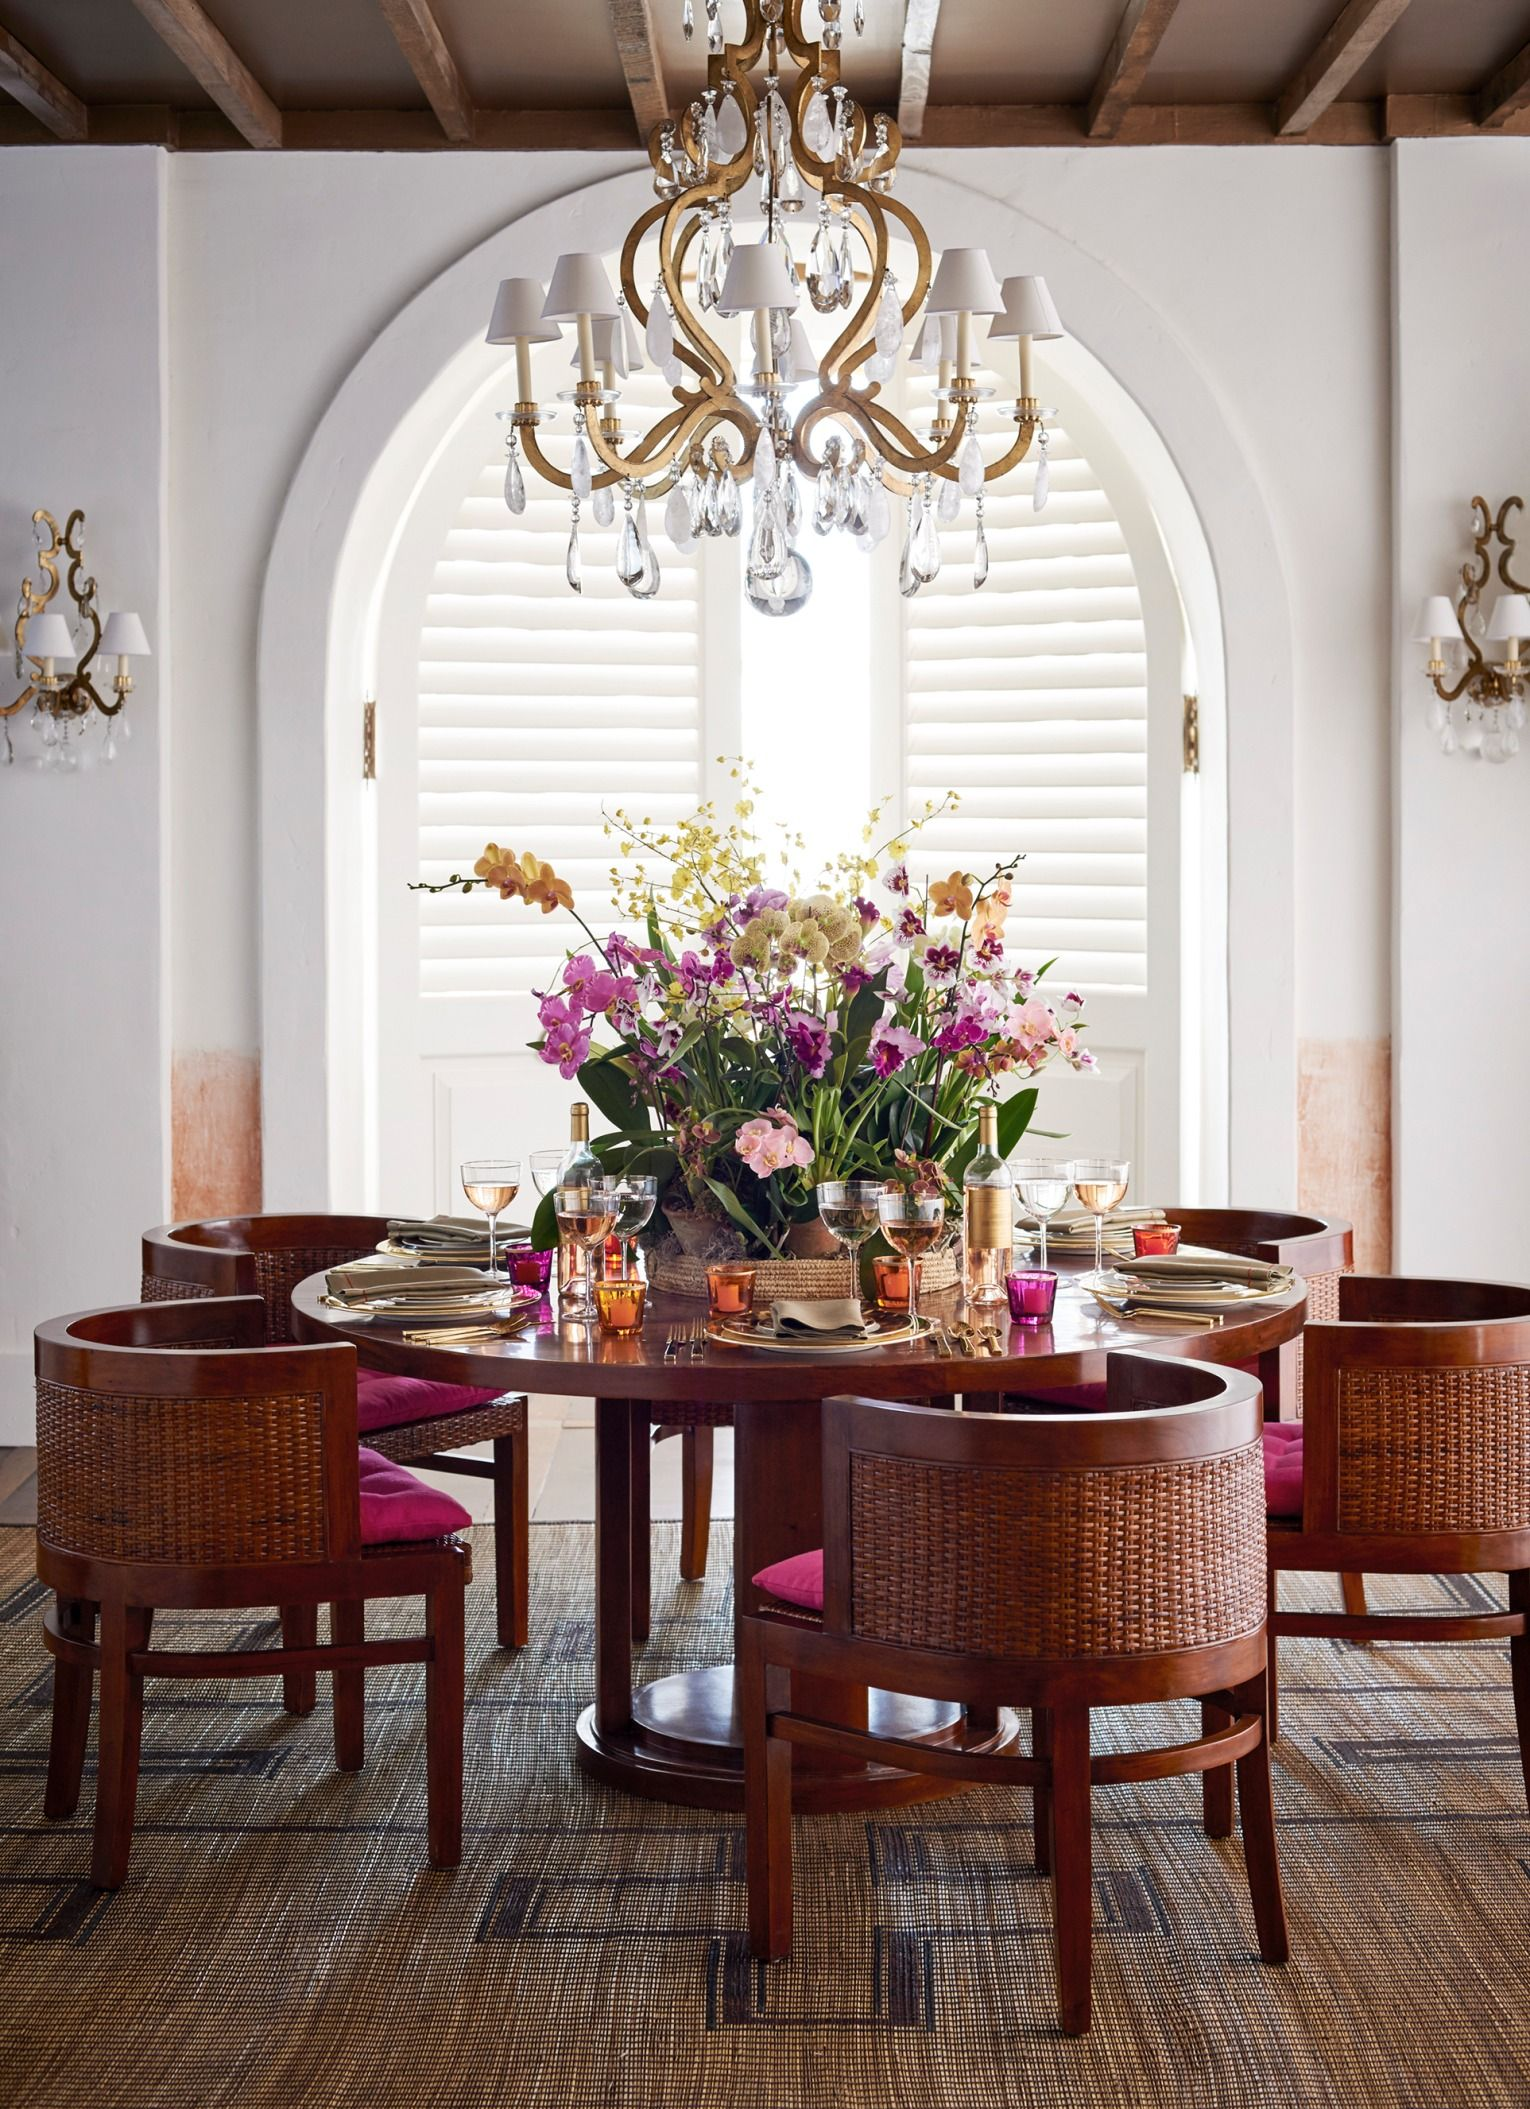 The Ralph Lauren Home Modern Sands Dining Table And Chairs Under Marie Chandelier